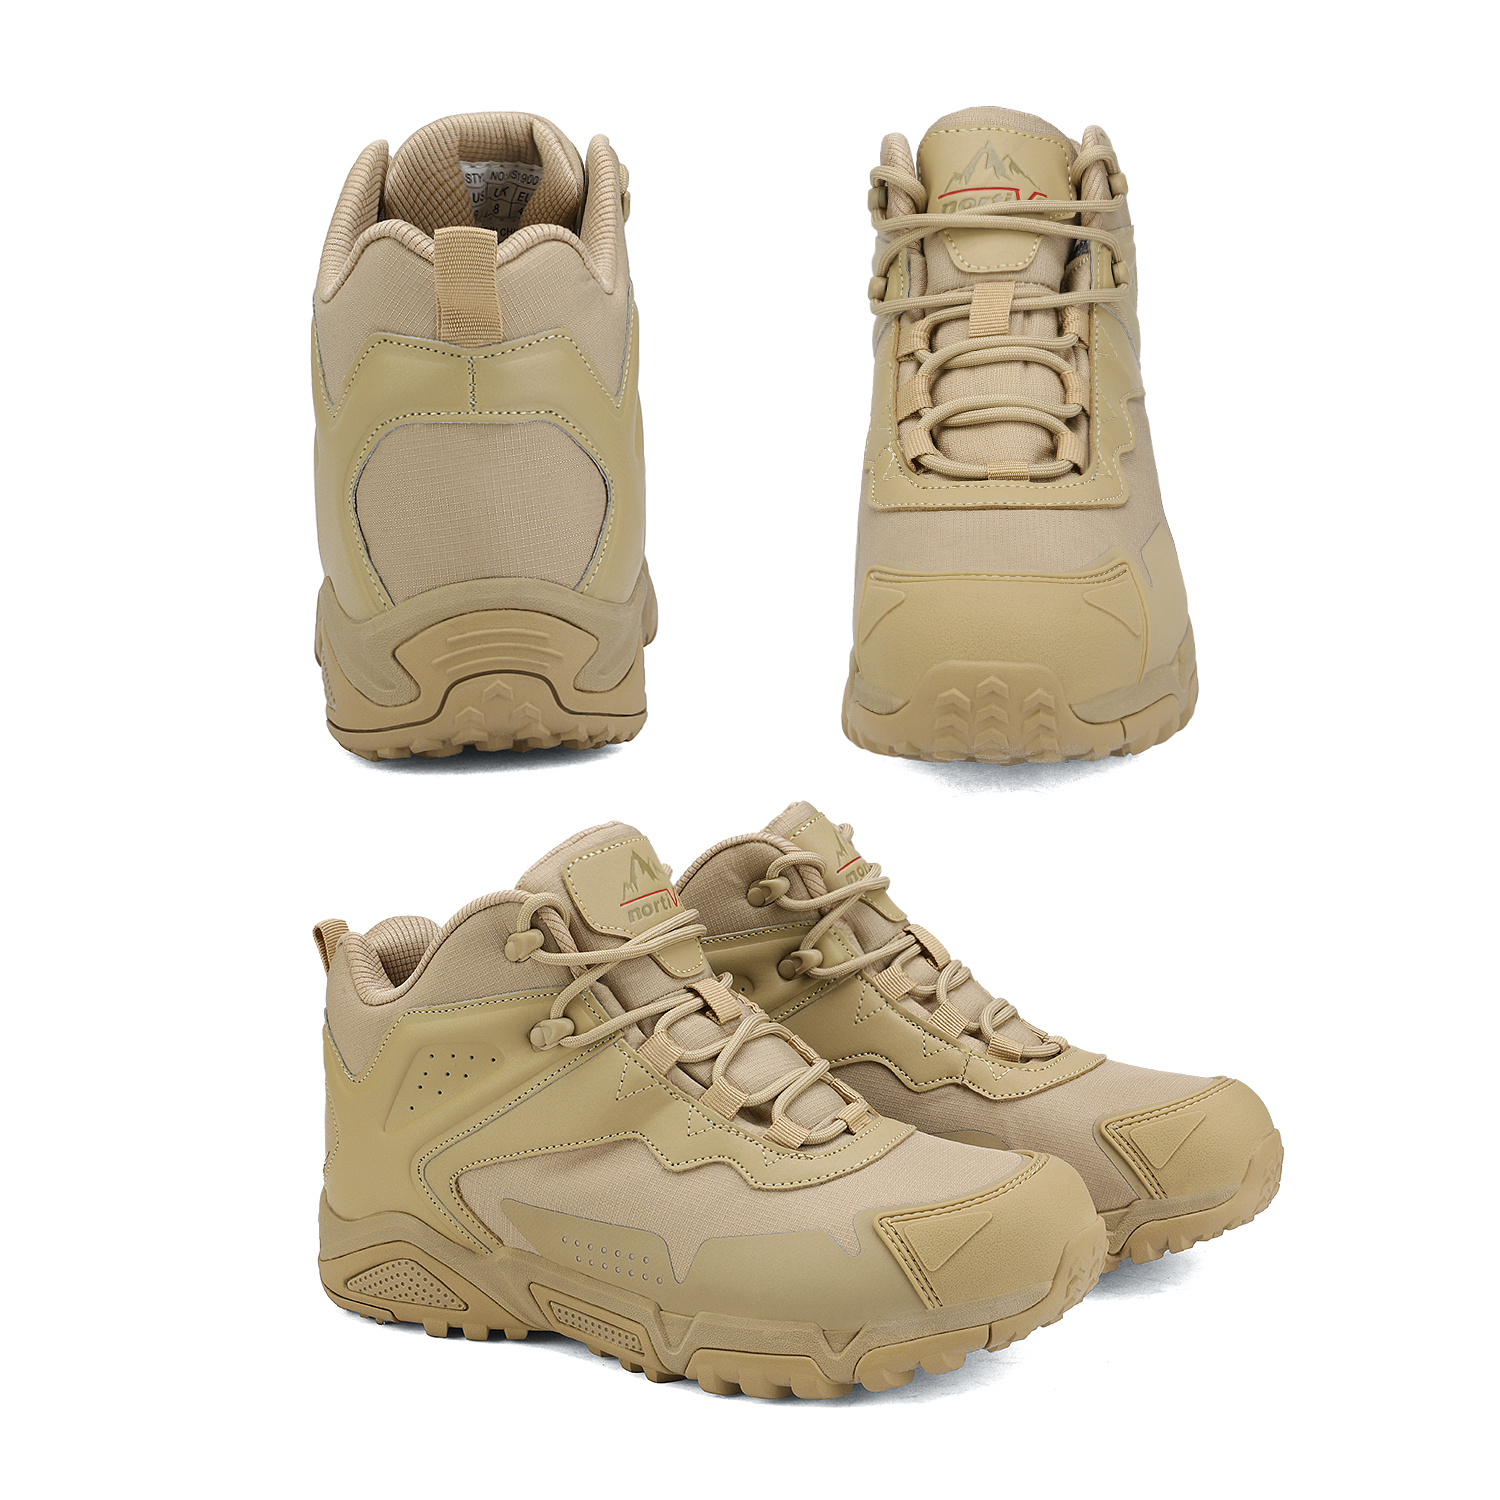 NORTIV-8-Men-039-s-Ankle-Waterproof-Hiking-Boots-Lightweight-Backpacking-Work-Shoes thumbnail 8